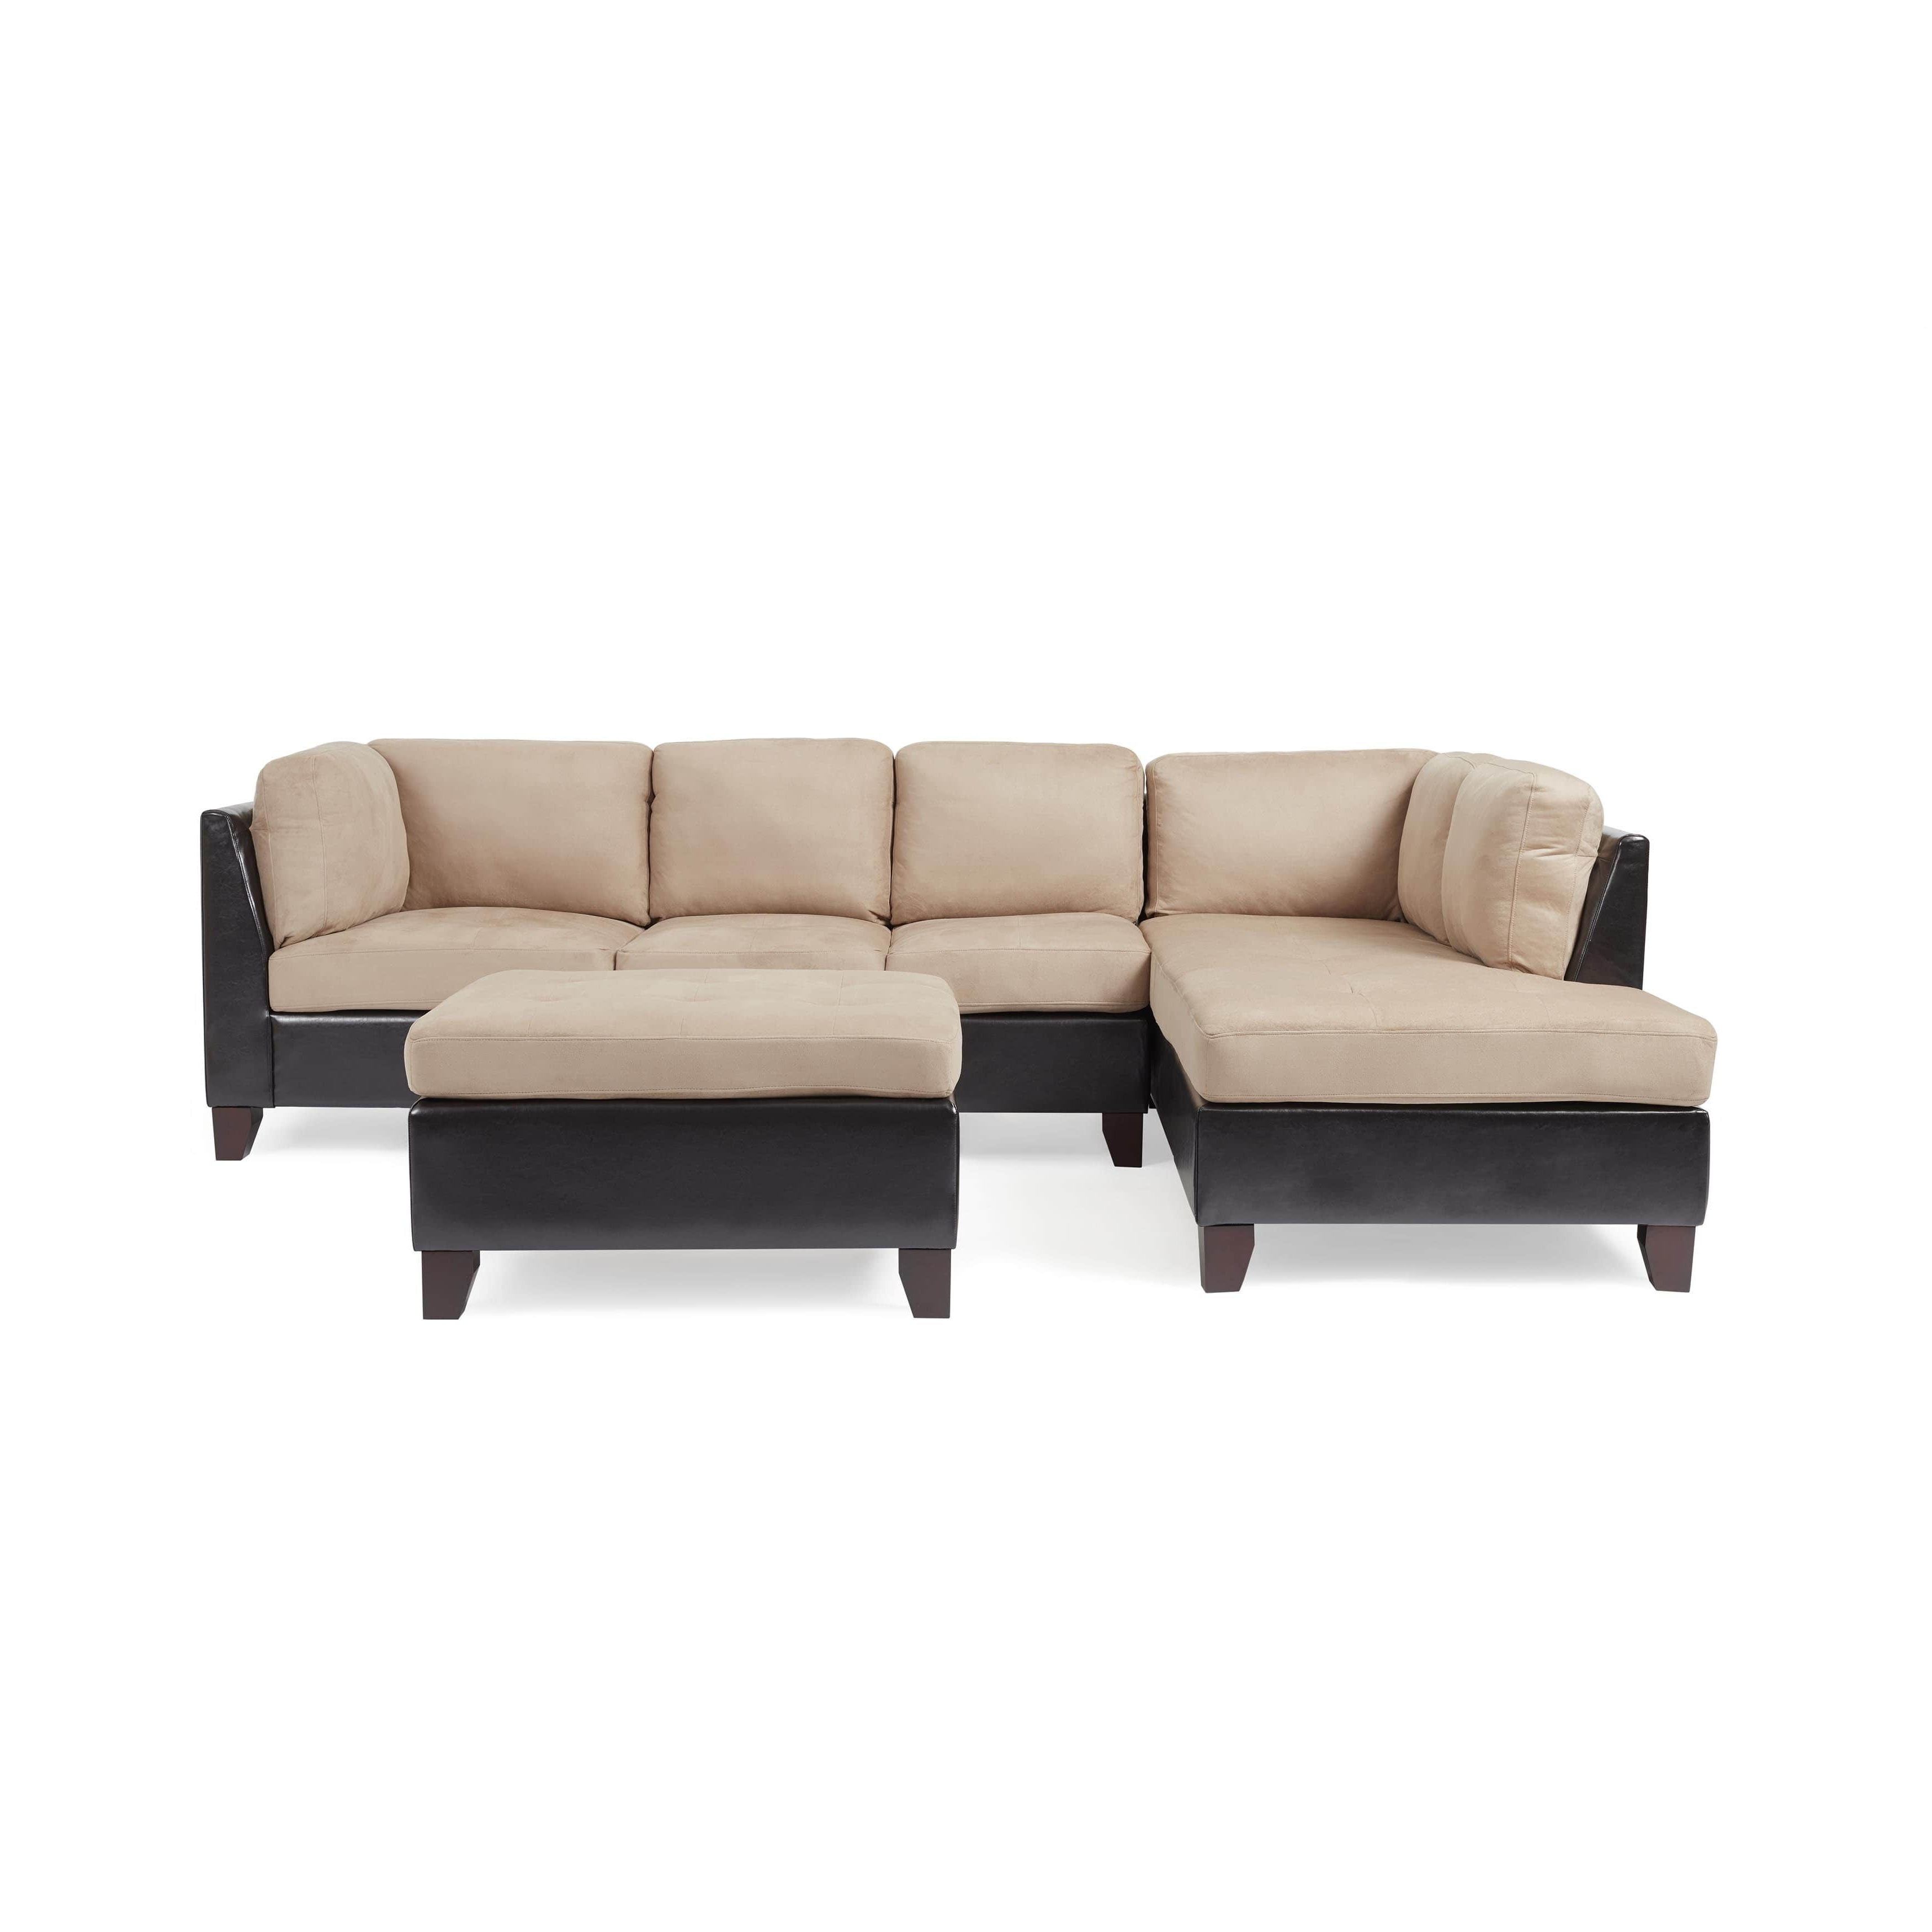 Abbyson Charlotte Beige Sectional Sofa And Ottoman – Free Shipping With Famous Charlotte Sectional Sofas (View 2 of 15)